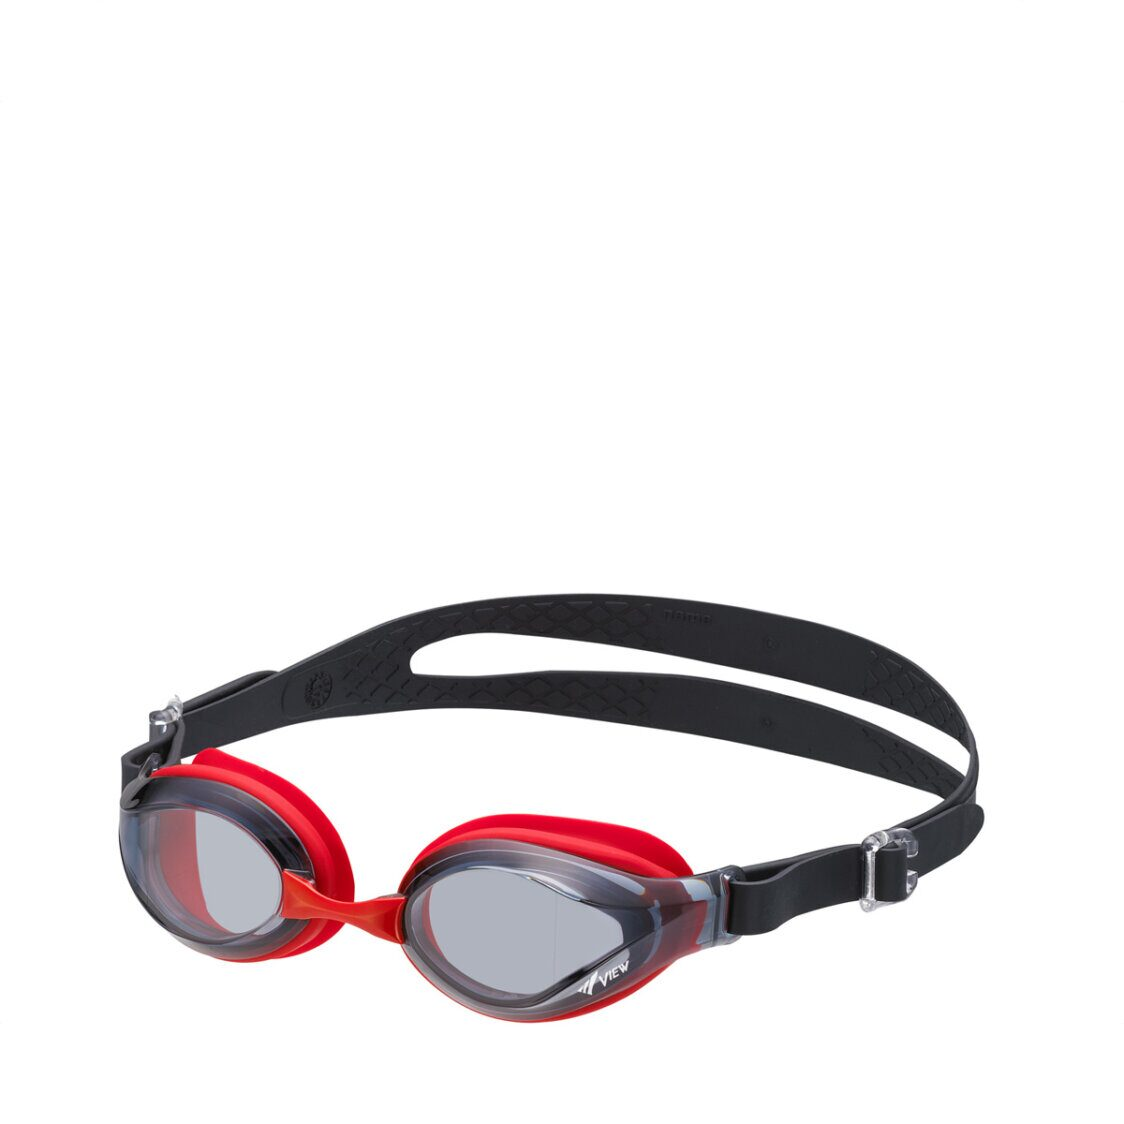 View Junior Goggle 6 To 12 Years Old Smoke Red AAV760JA